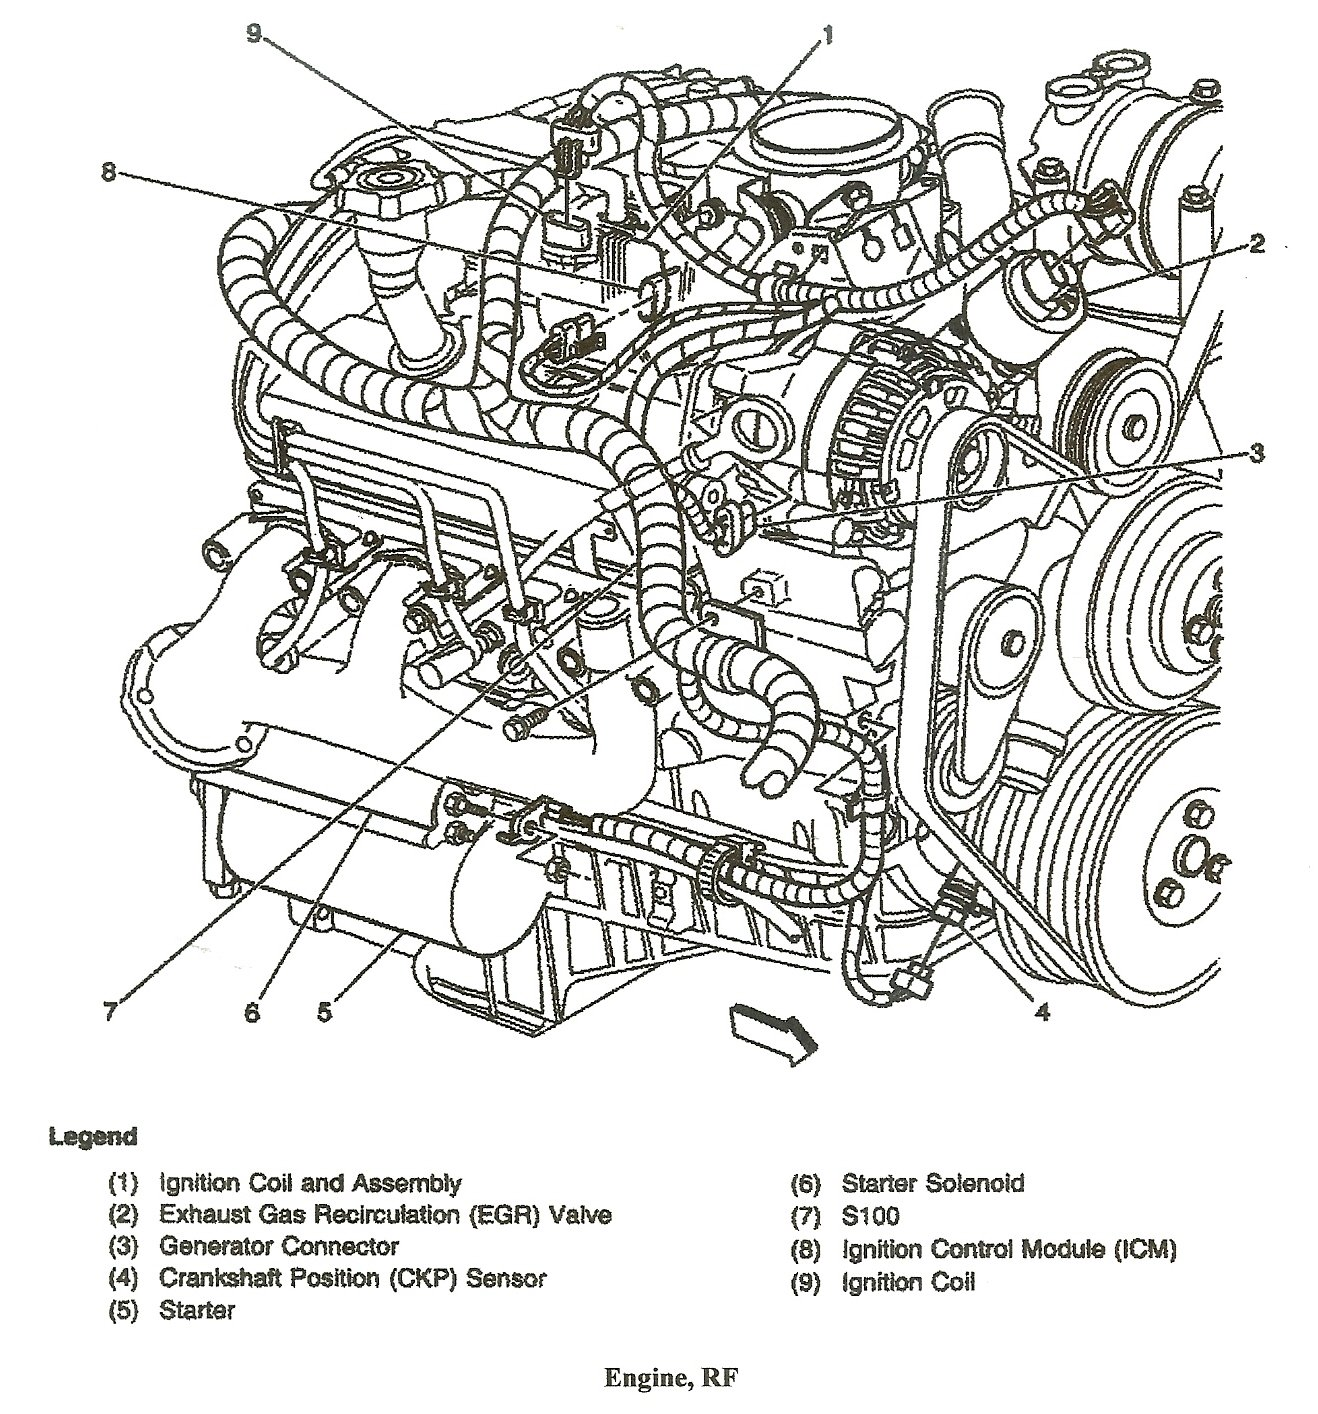 1999 Chevy Blazer Engine Diagram 1989 Chevy Truck Fuel Pump Wiring Diagram Begeboy Wiring Diagram Source